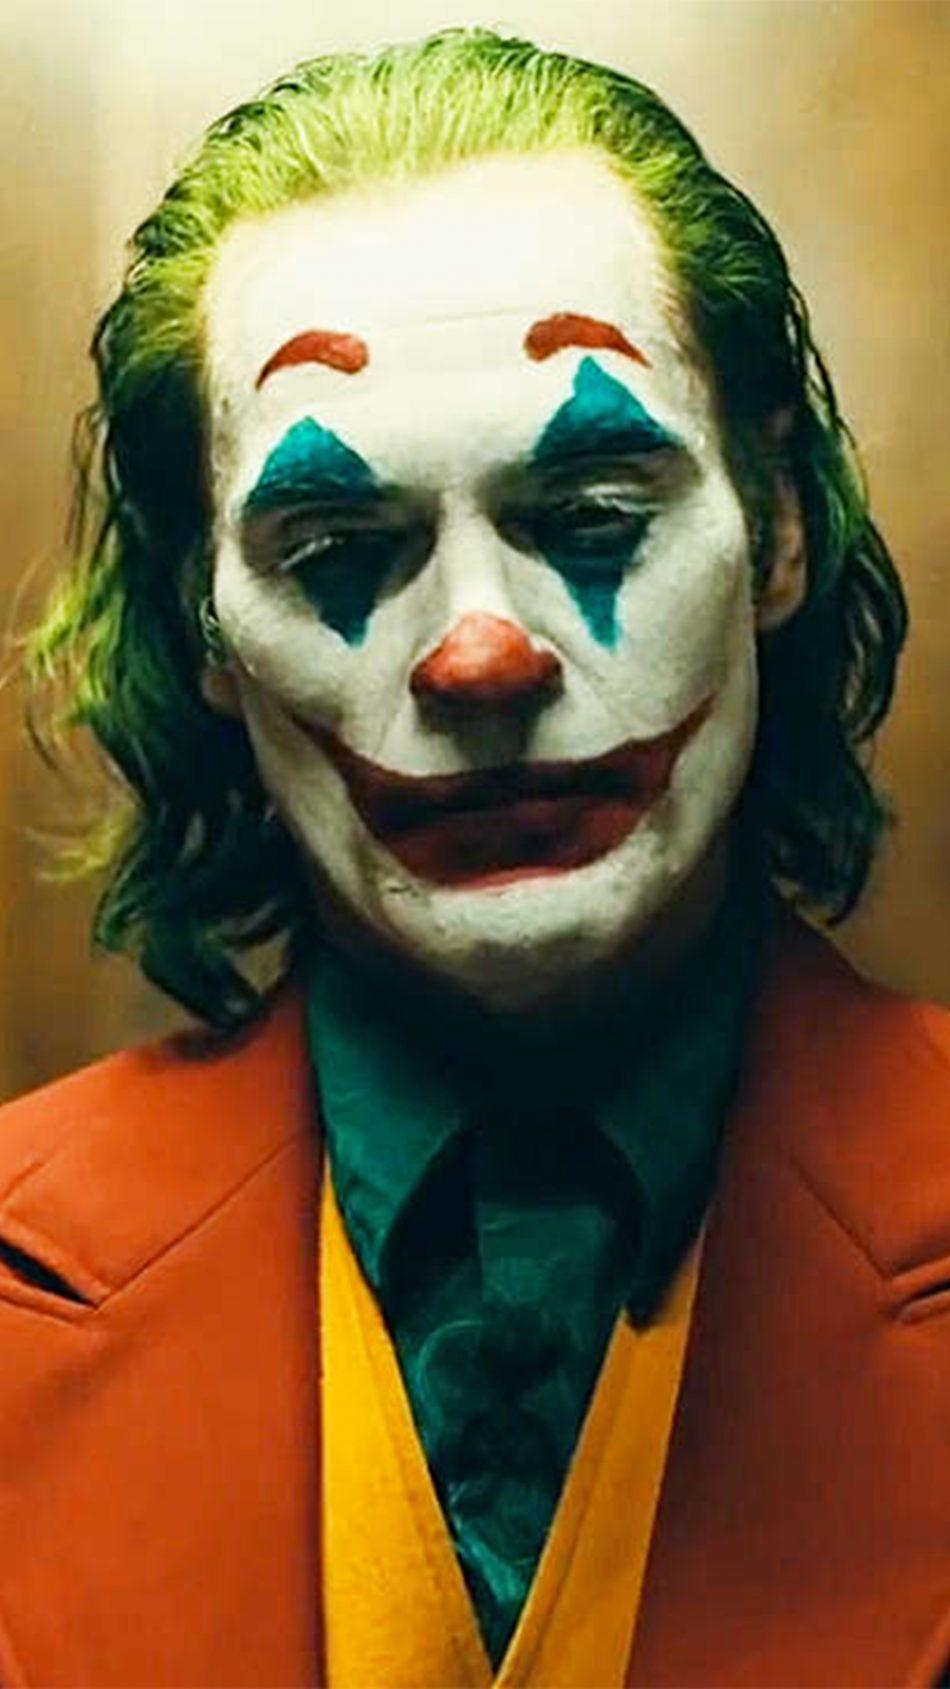 Download Joaquin Phoenix In Joker 2019 Free Pure 4K Ultra HD